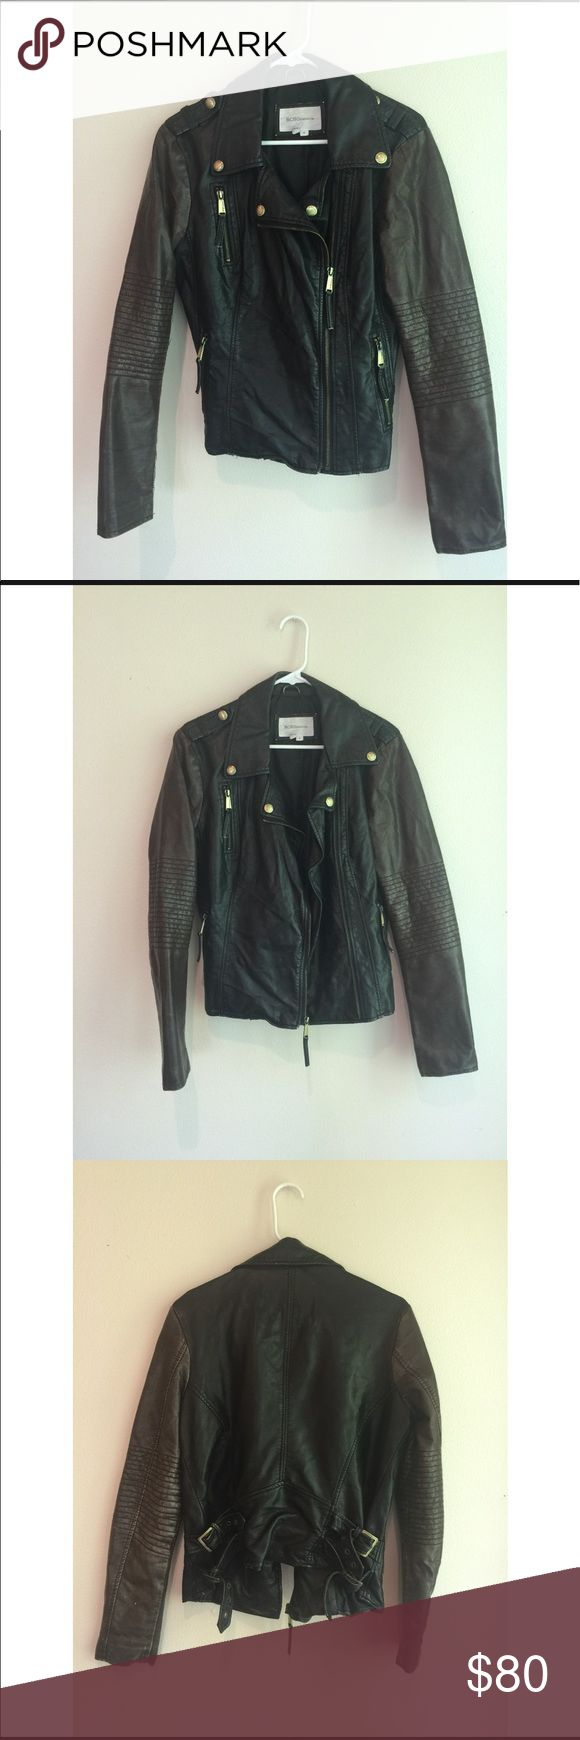 BCBGeneration Black/Brown Leather Jacket - Medium Gently used BCBGeneration leather jacket sized medium. No real signs of wear and tear. BCBGeneration Jackets & Coats